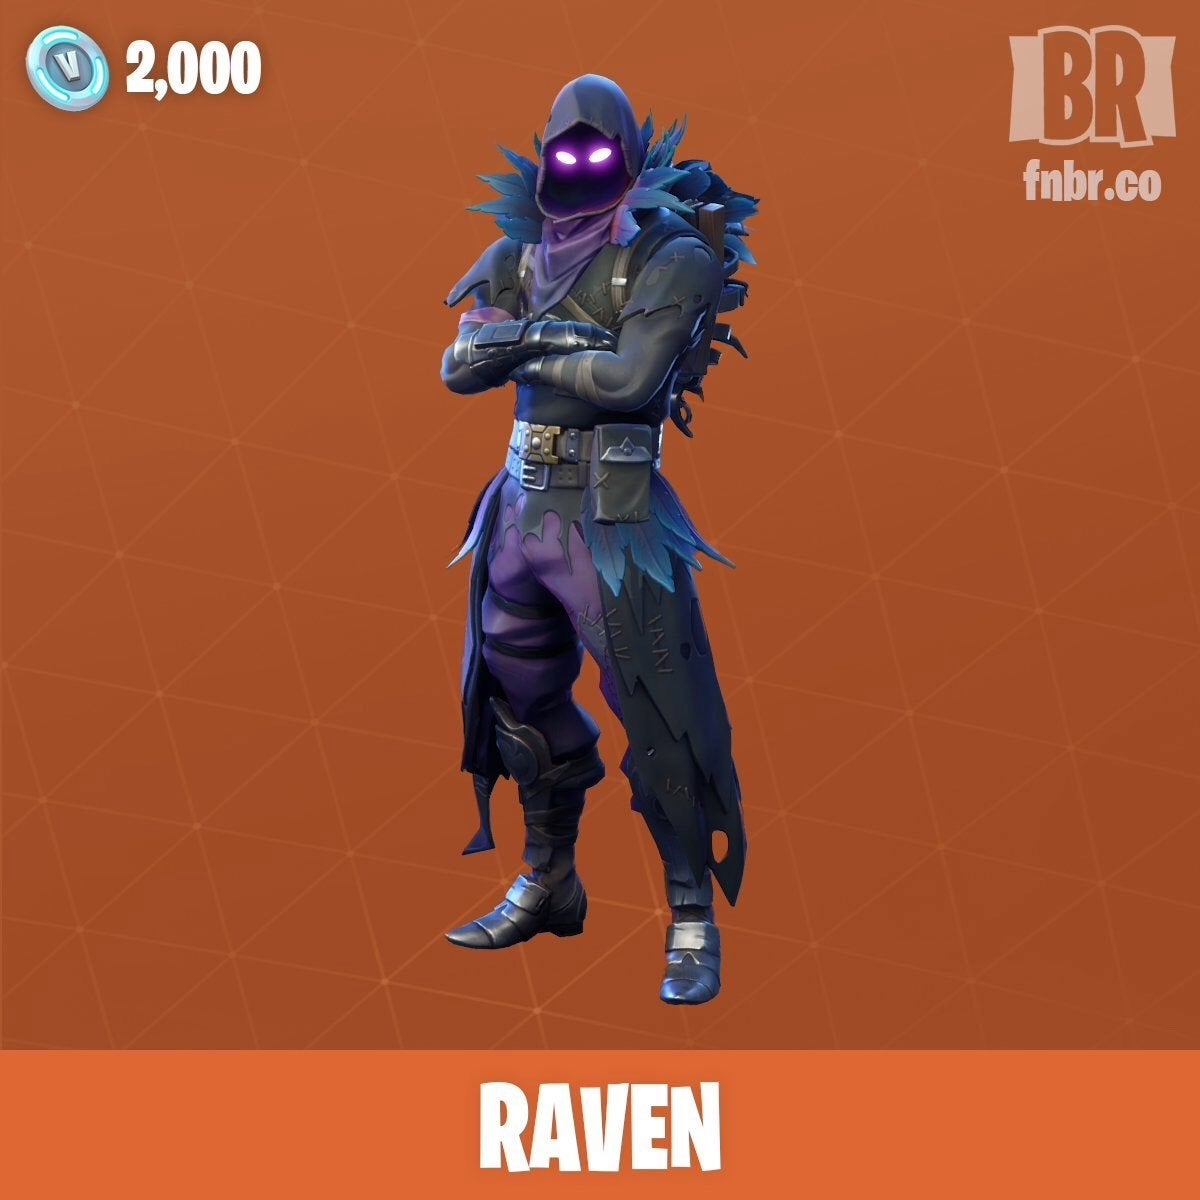 Fortnite Art Cool Raven Gamerpic